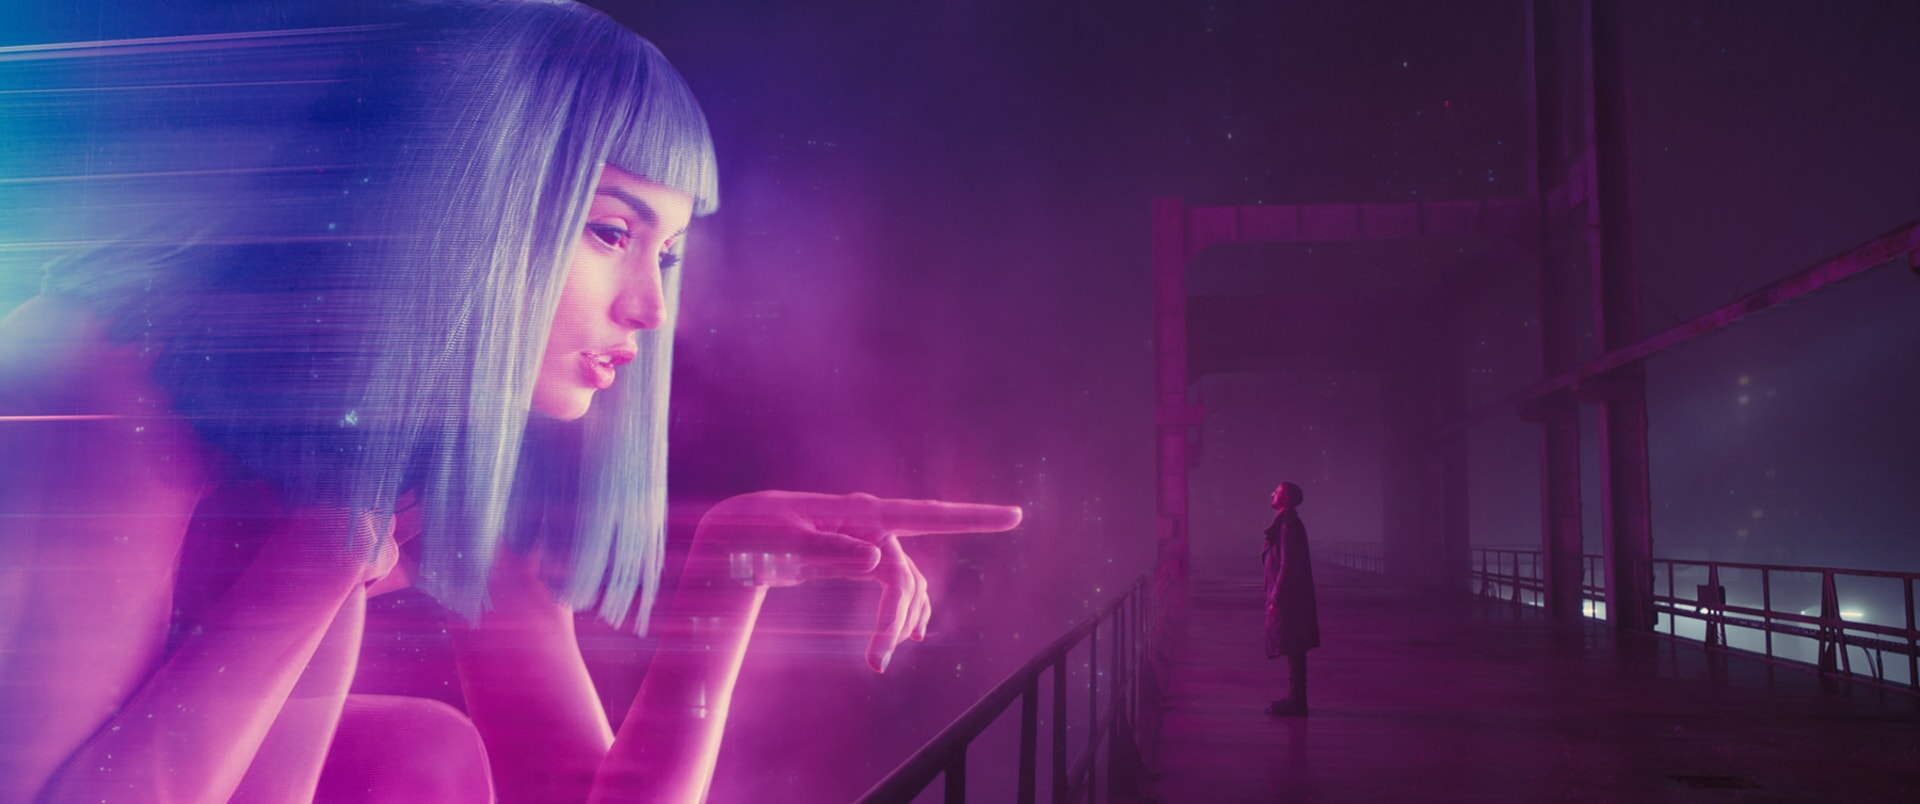 "ANA DE ARMAS as Joi and RYAN GOSLING as K in Alcon Entertainment's sci fi thriller ""BLADE RUNNER 2049,"" a Warner Bros. Pictures and Sony Pictures Entertainment release, domestic distribution by Warner Bros. Pictures and international distribution by Sony Pictures."